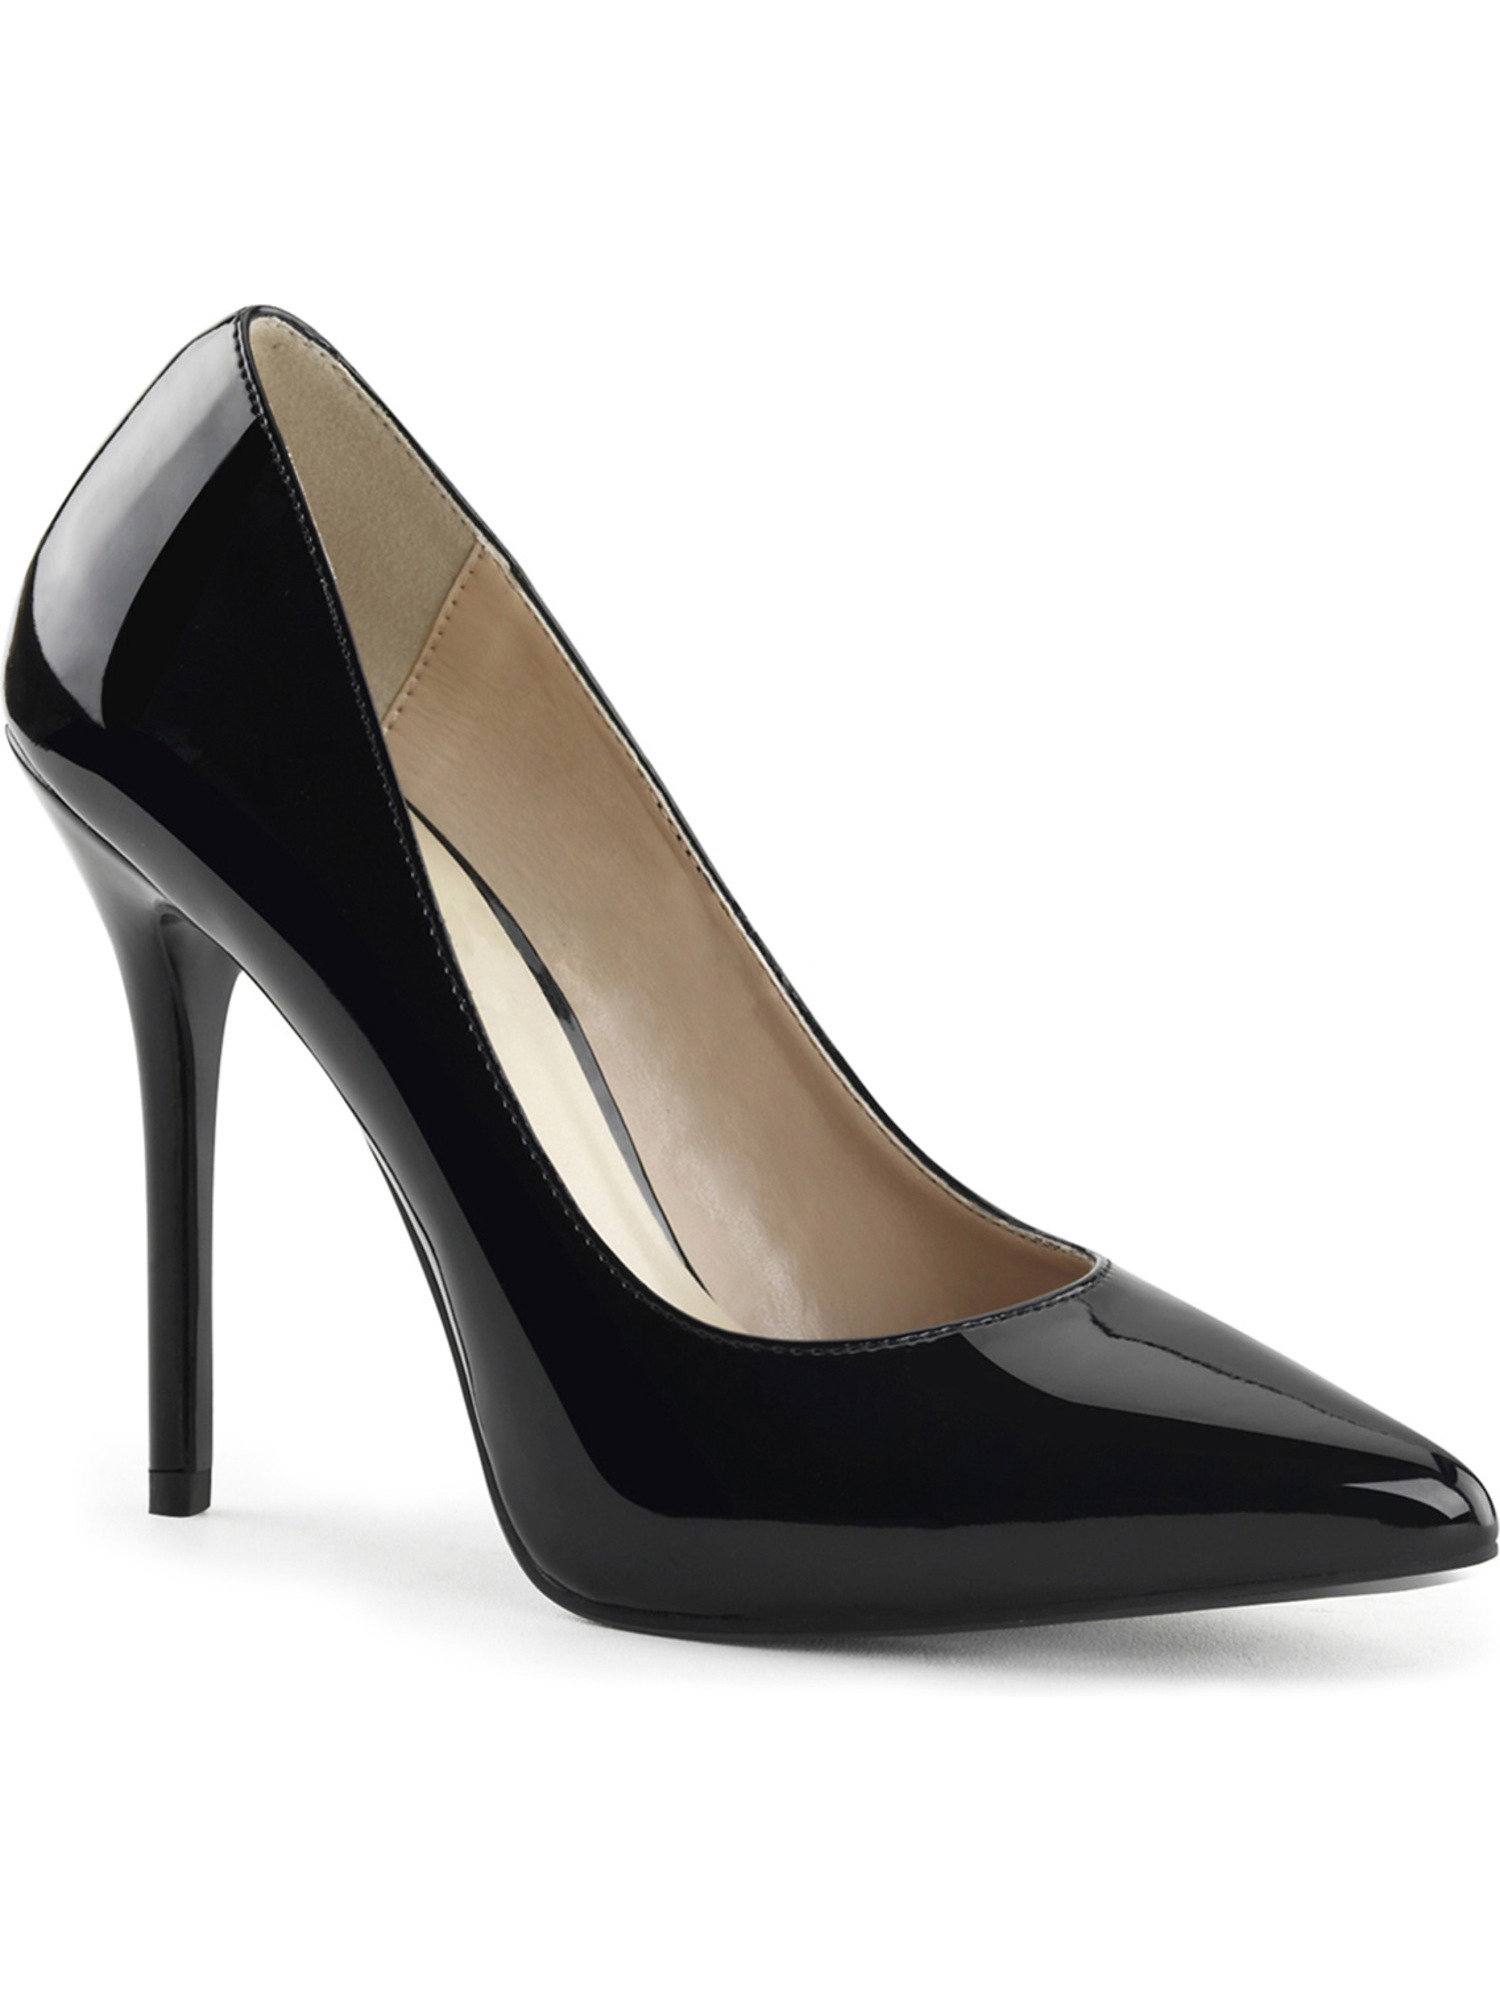 High Heel Pumps Black Pointed Toe Shoes